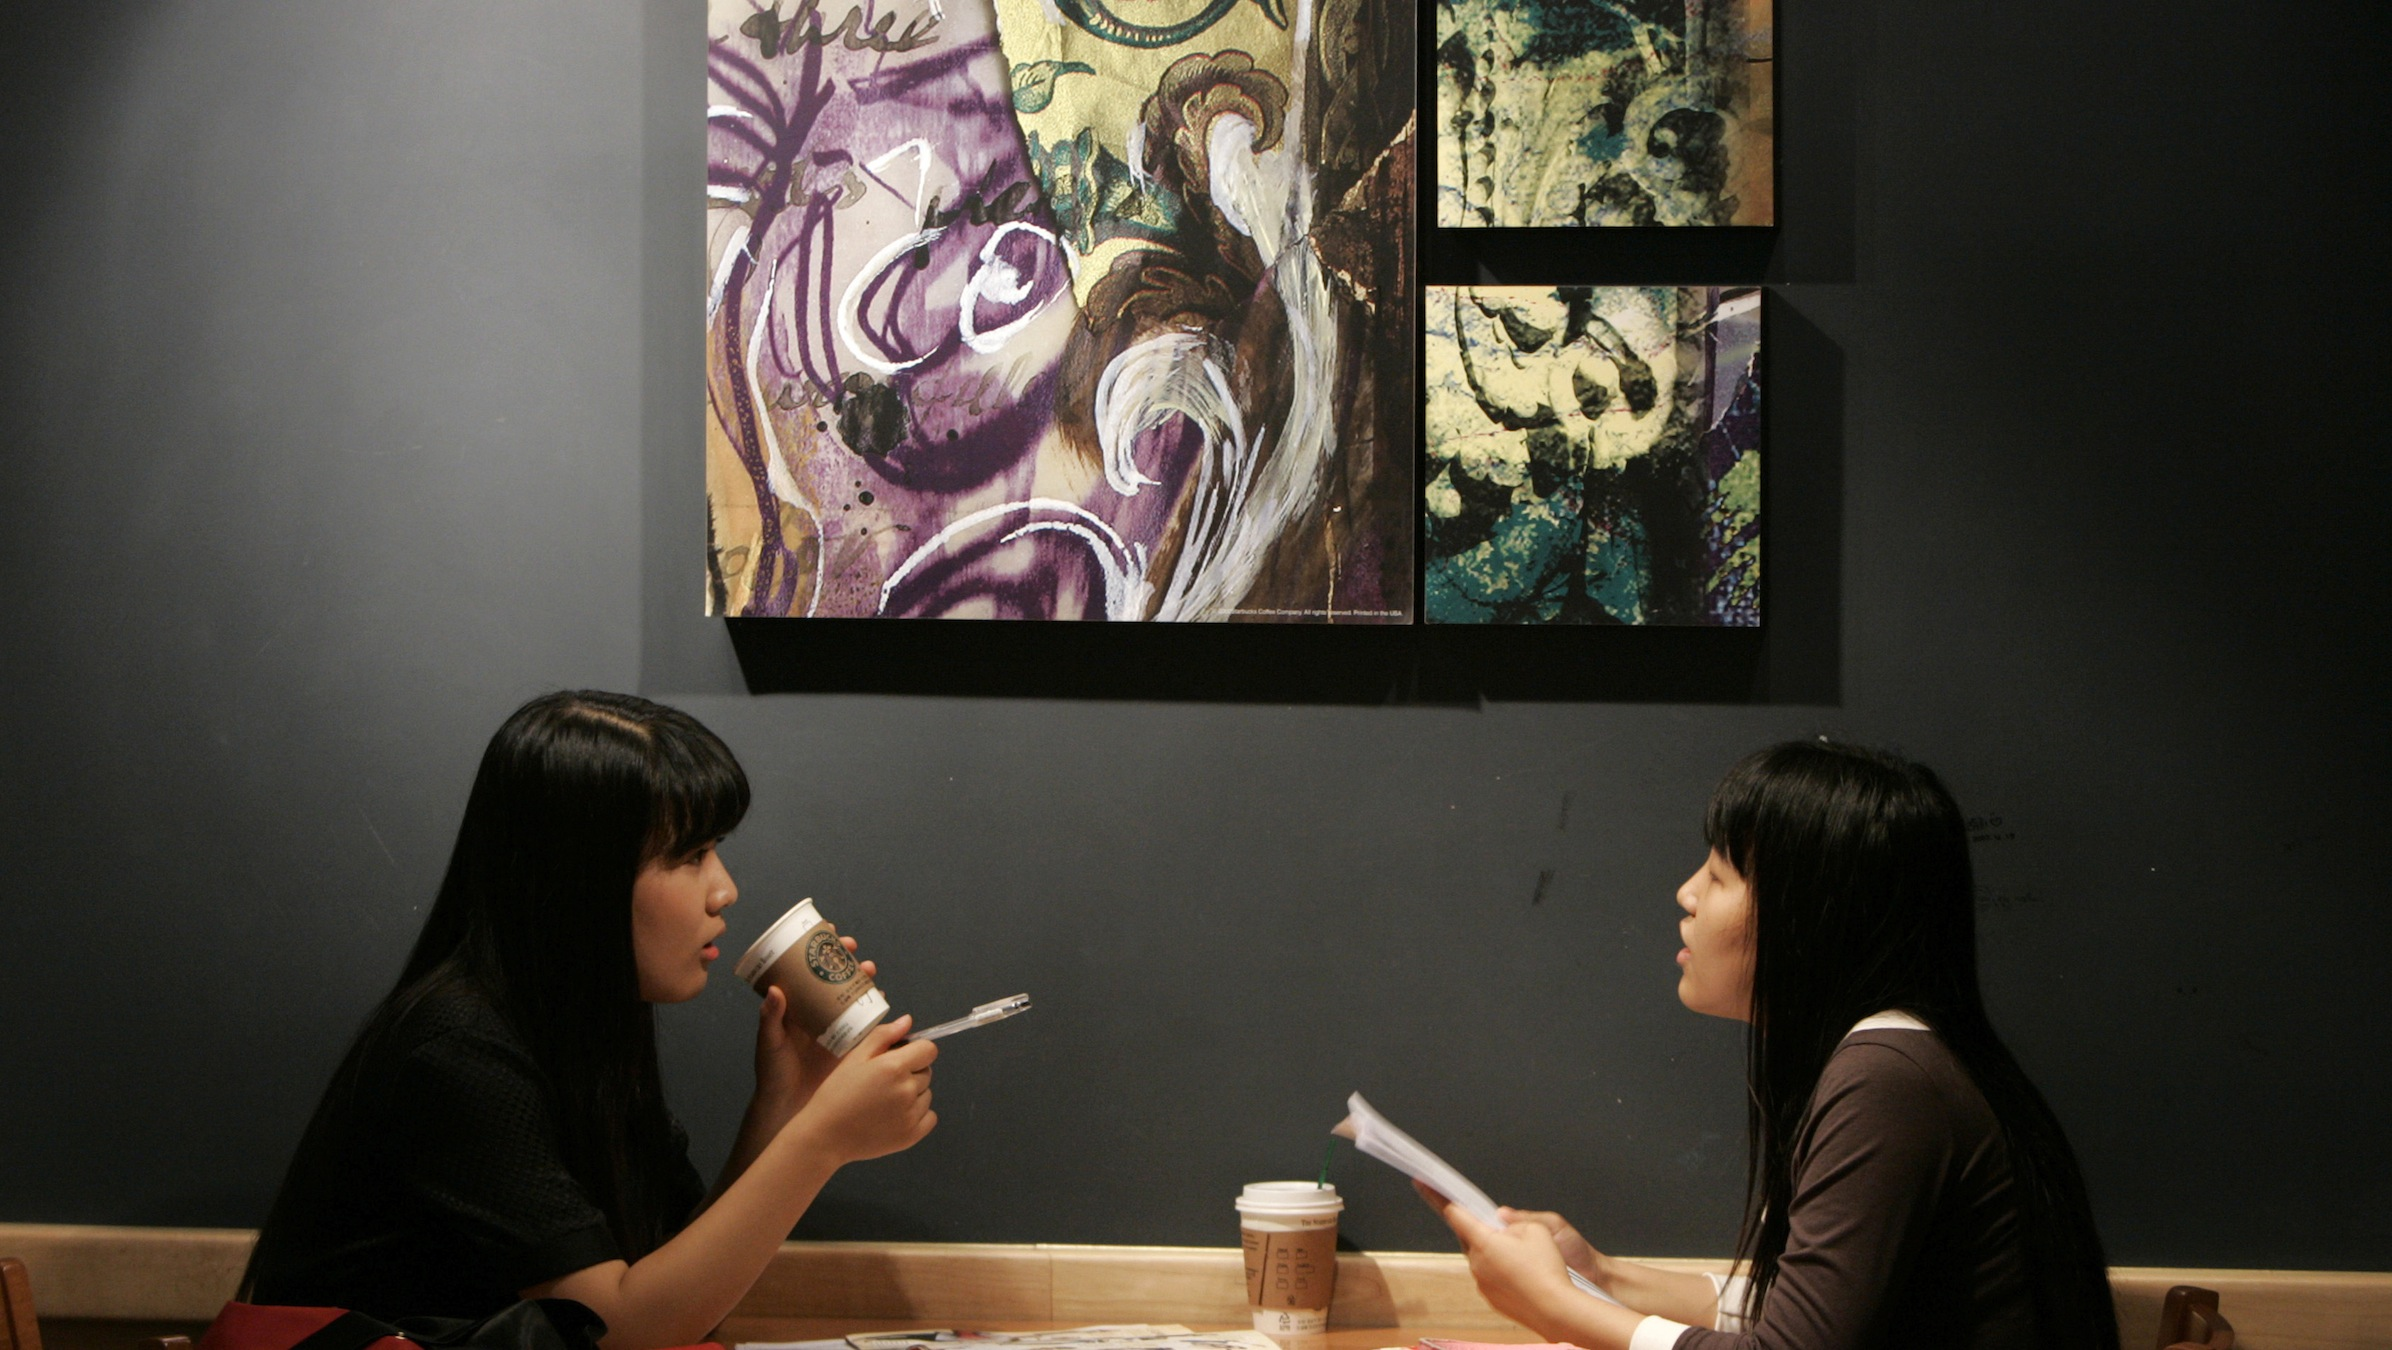 Two women talk as they drink coffee at a Starbucks coffee shop in central Seoul September 21, 2007. Photo taken on September 21, 2007. To match feature ASIA-TEA/    REUTERS/Han Jae-Ho (SOUTH KOREA) - RTR1UXJD